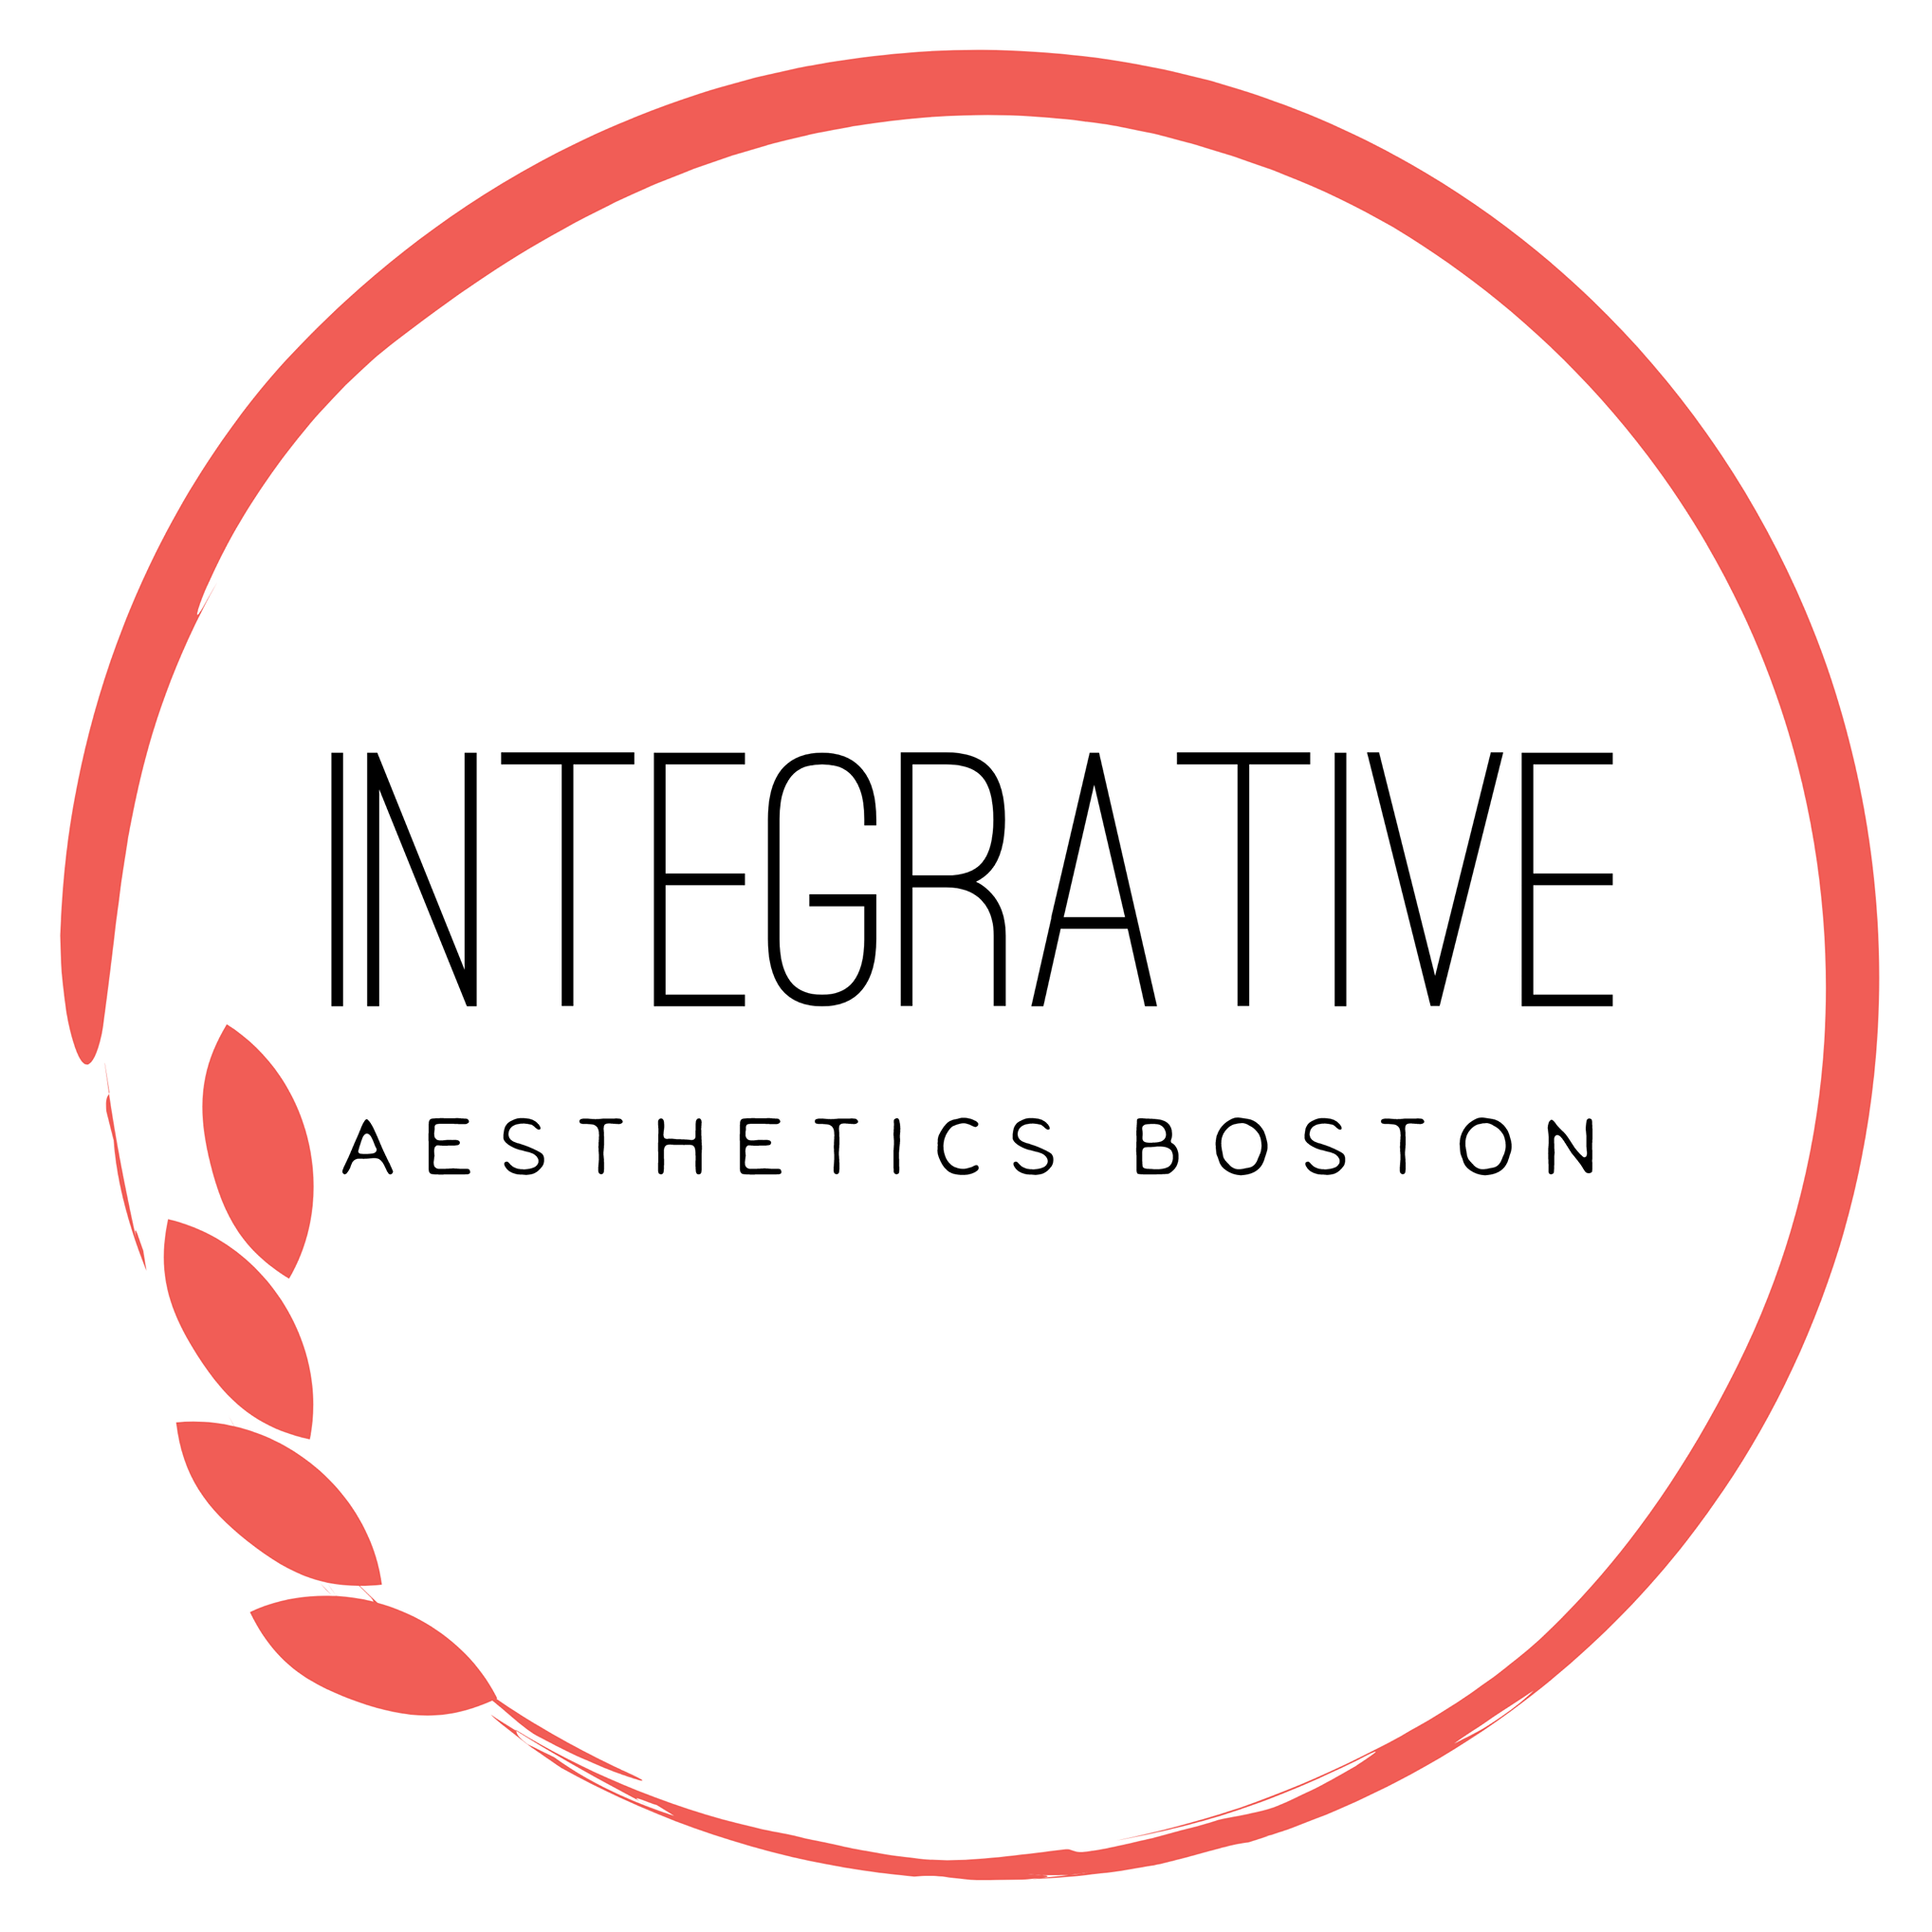 Integrative Aesthetics Boston